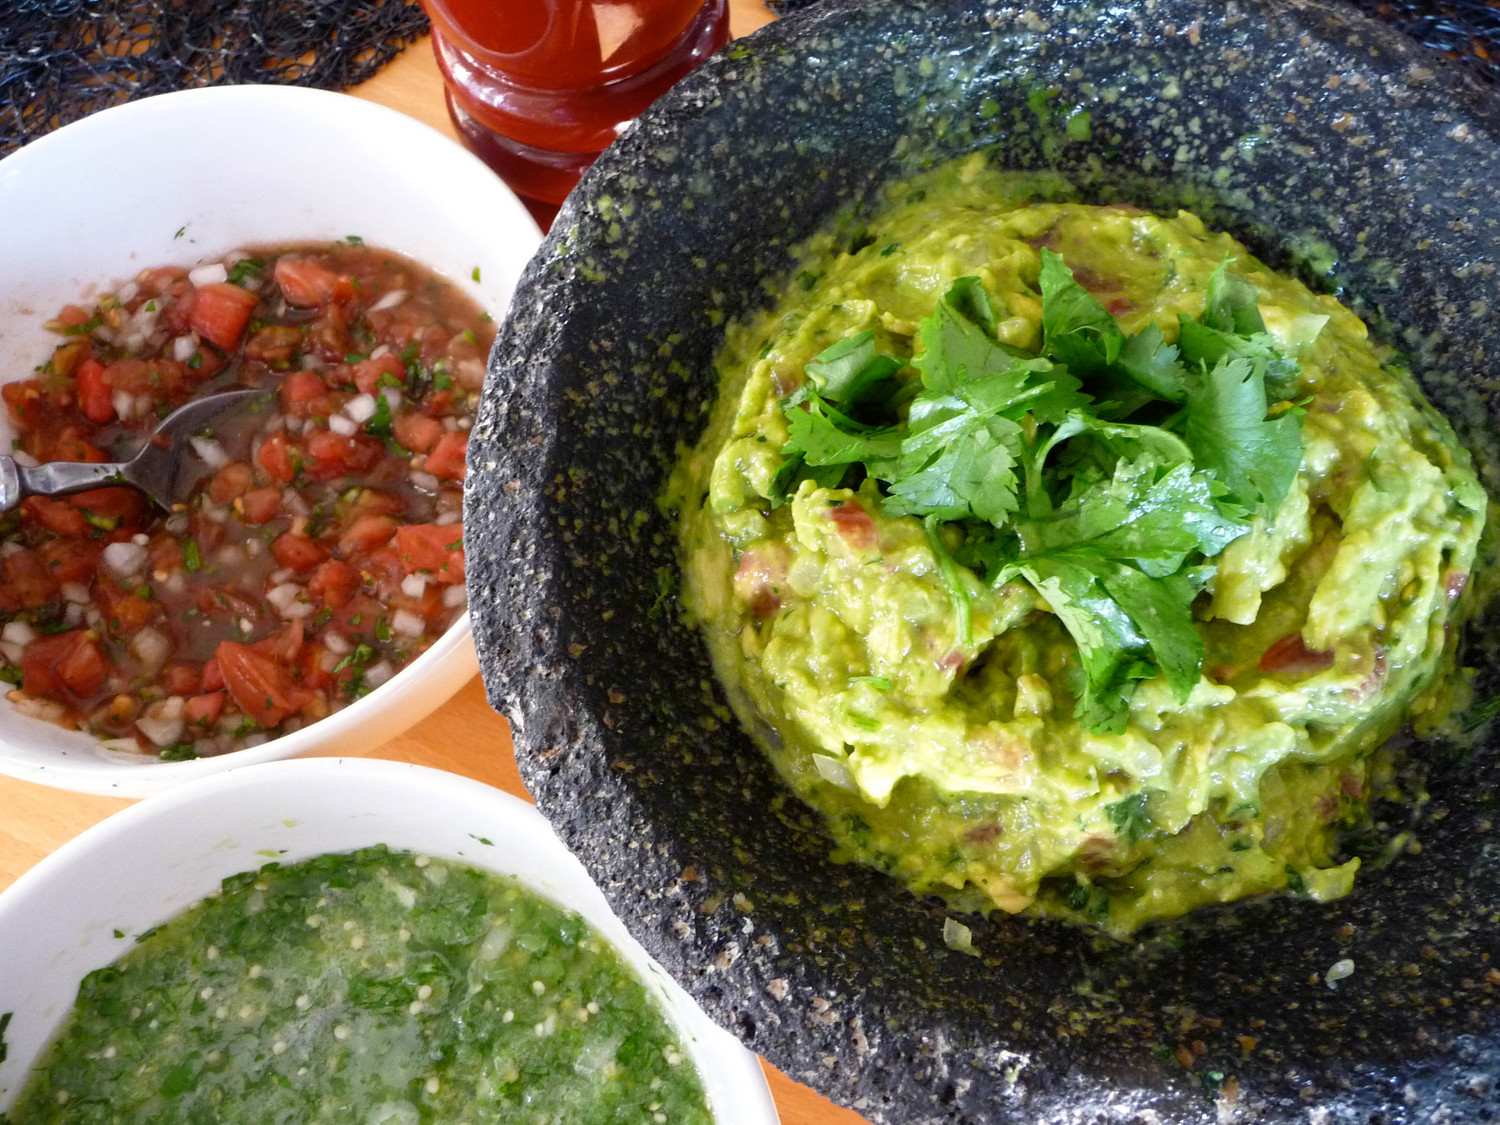 Leslie Brenner's guacamole and salsas